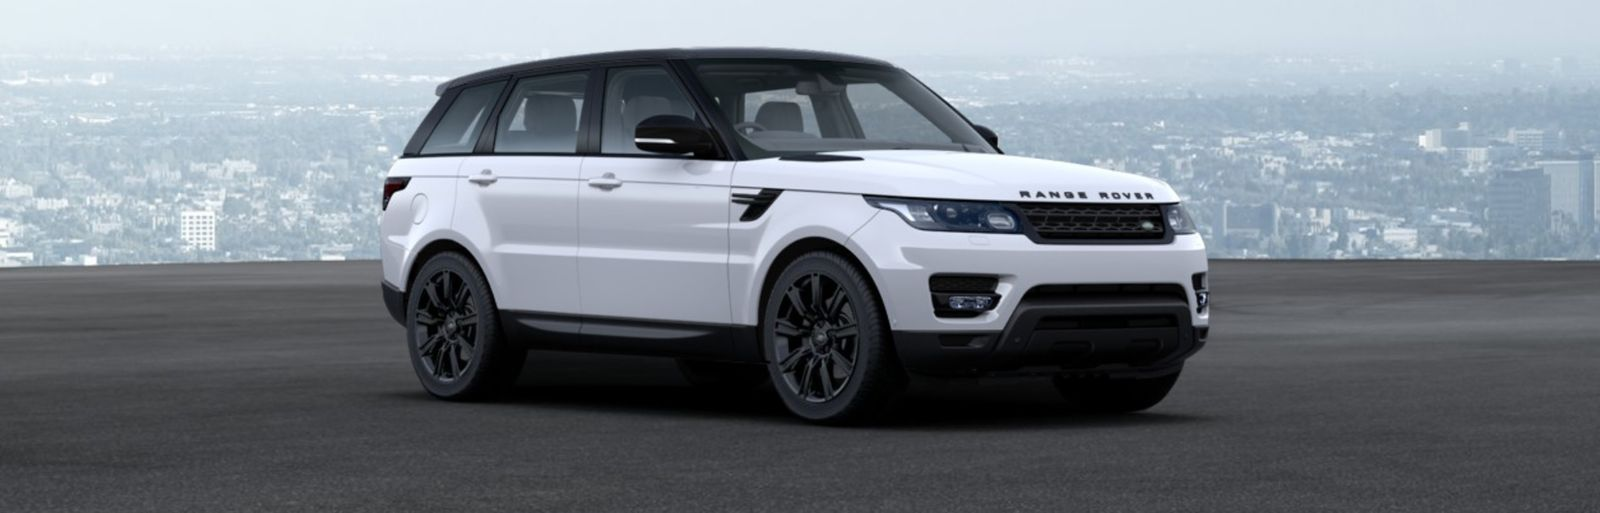 range rover sport colours guide carwow. Black Bedroom Furniture Sets. Home Design Ideas